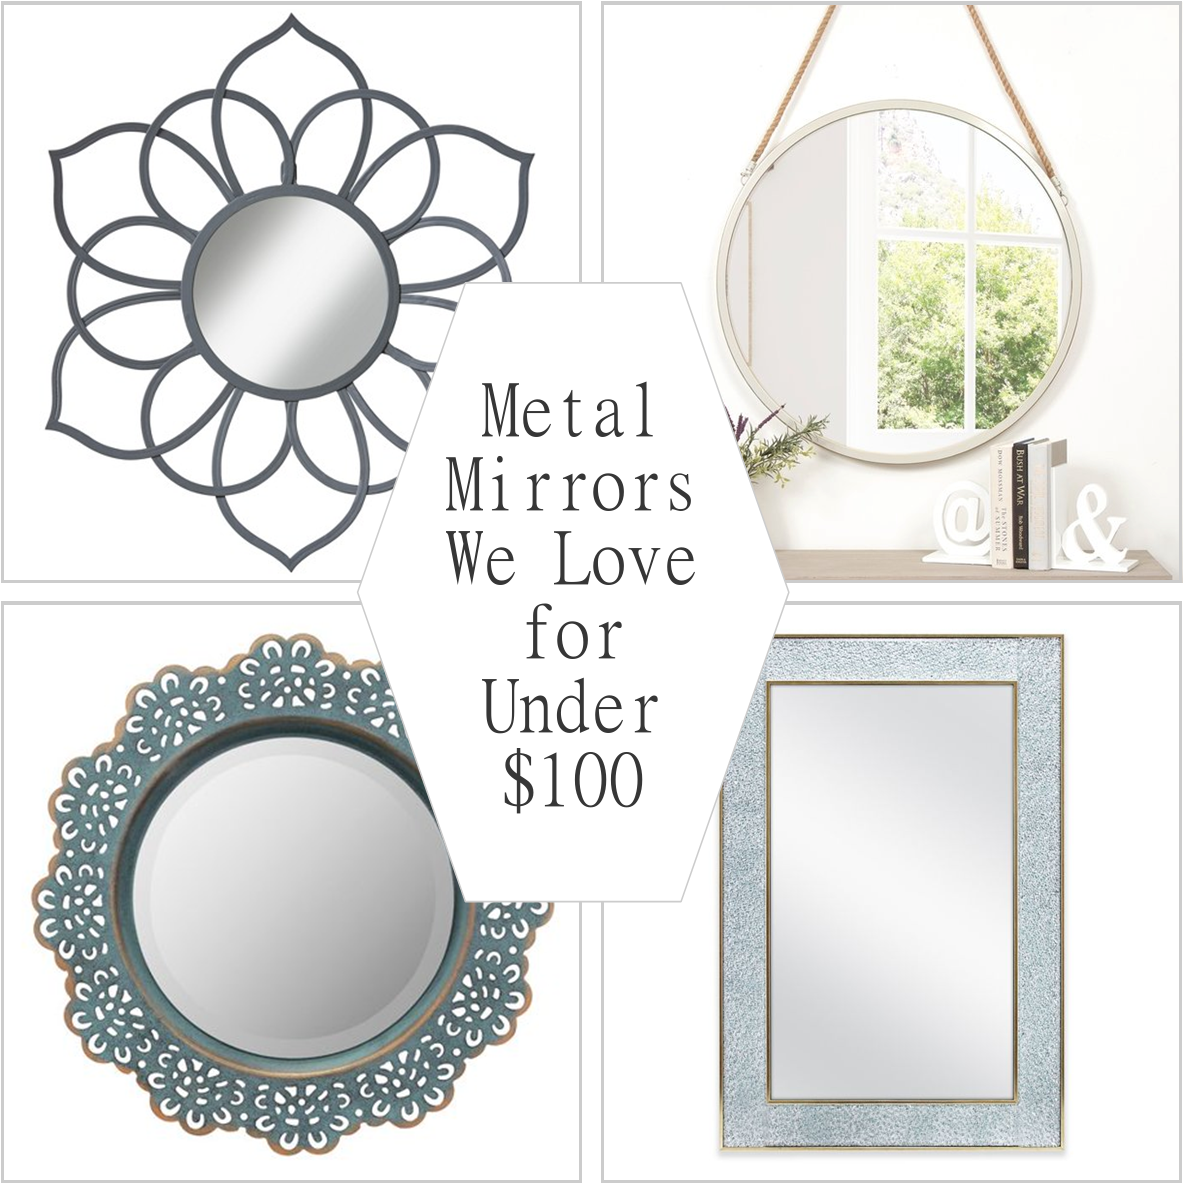 Metal Mirrors We Love for under $100